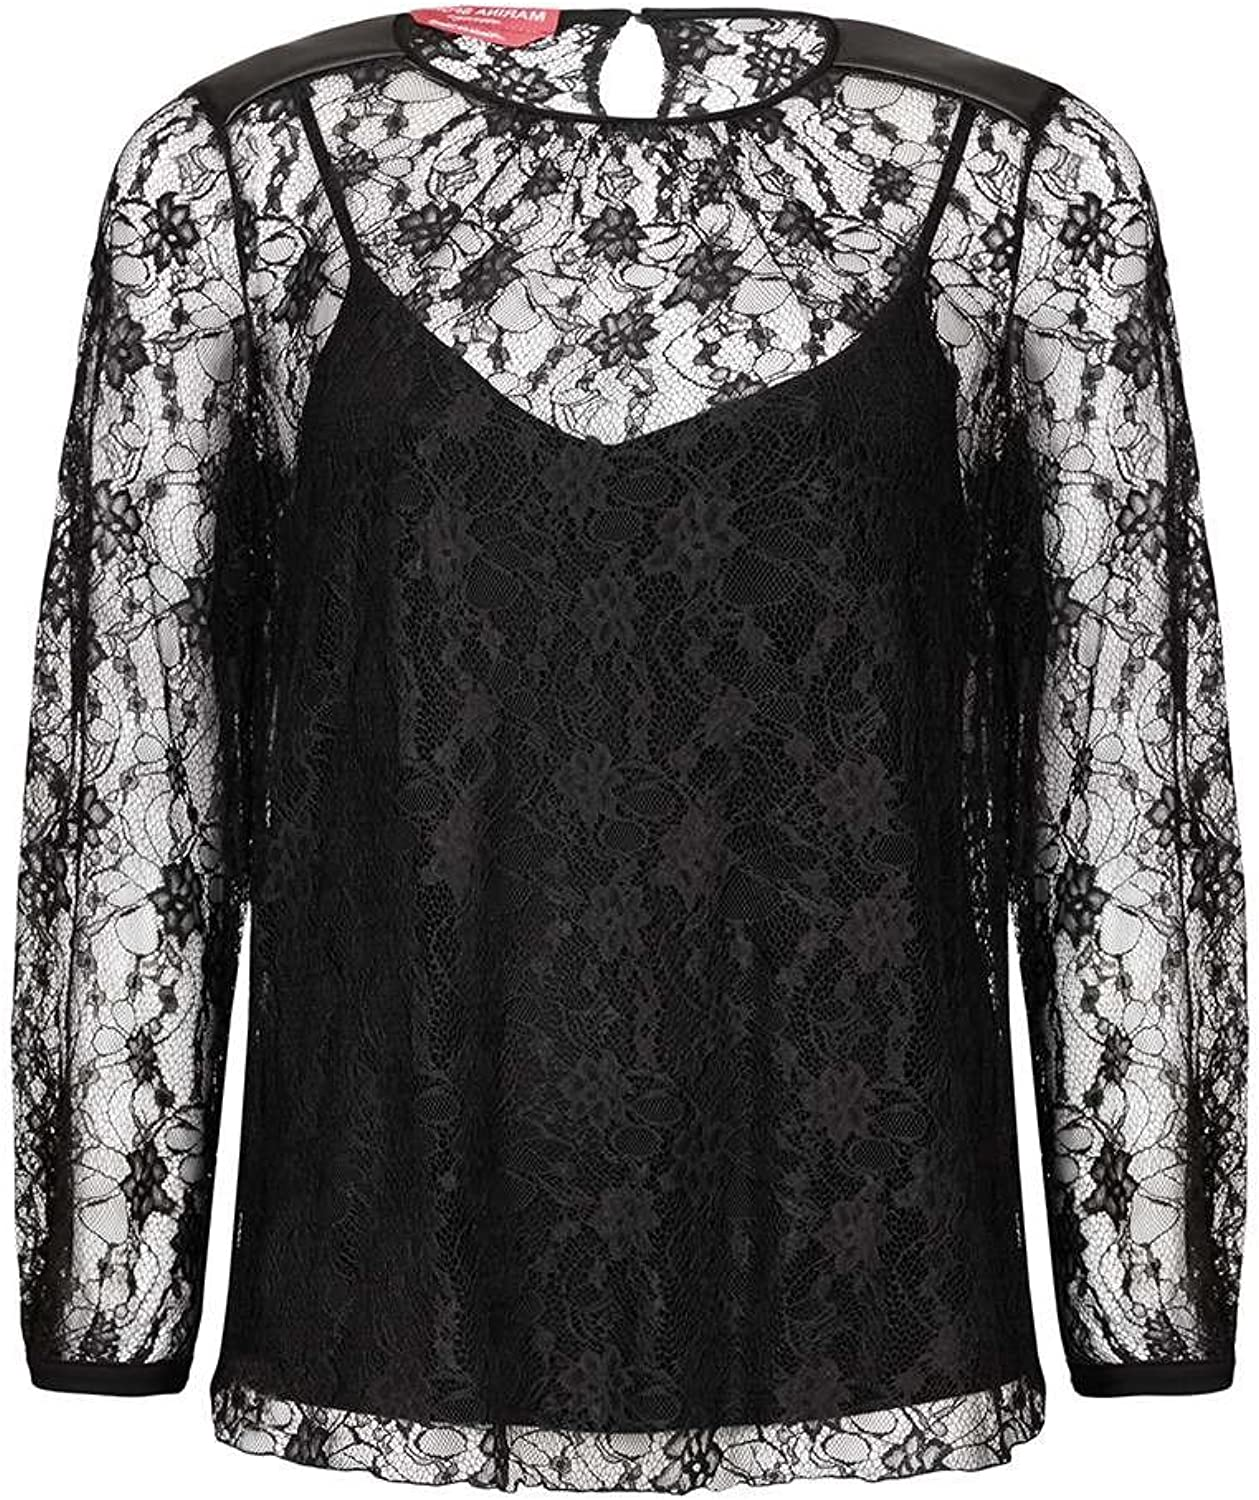 Marina Rinaldi Women's Balia Lace Shell Blouse, Black